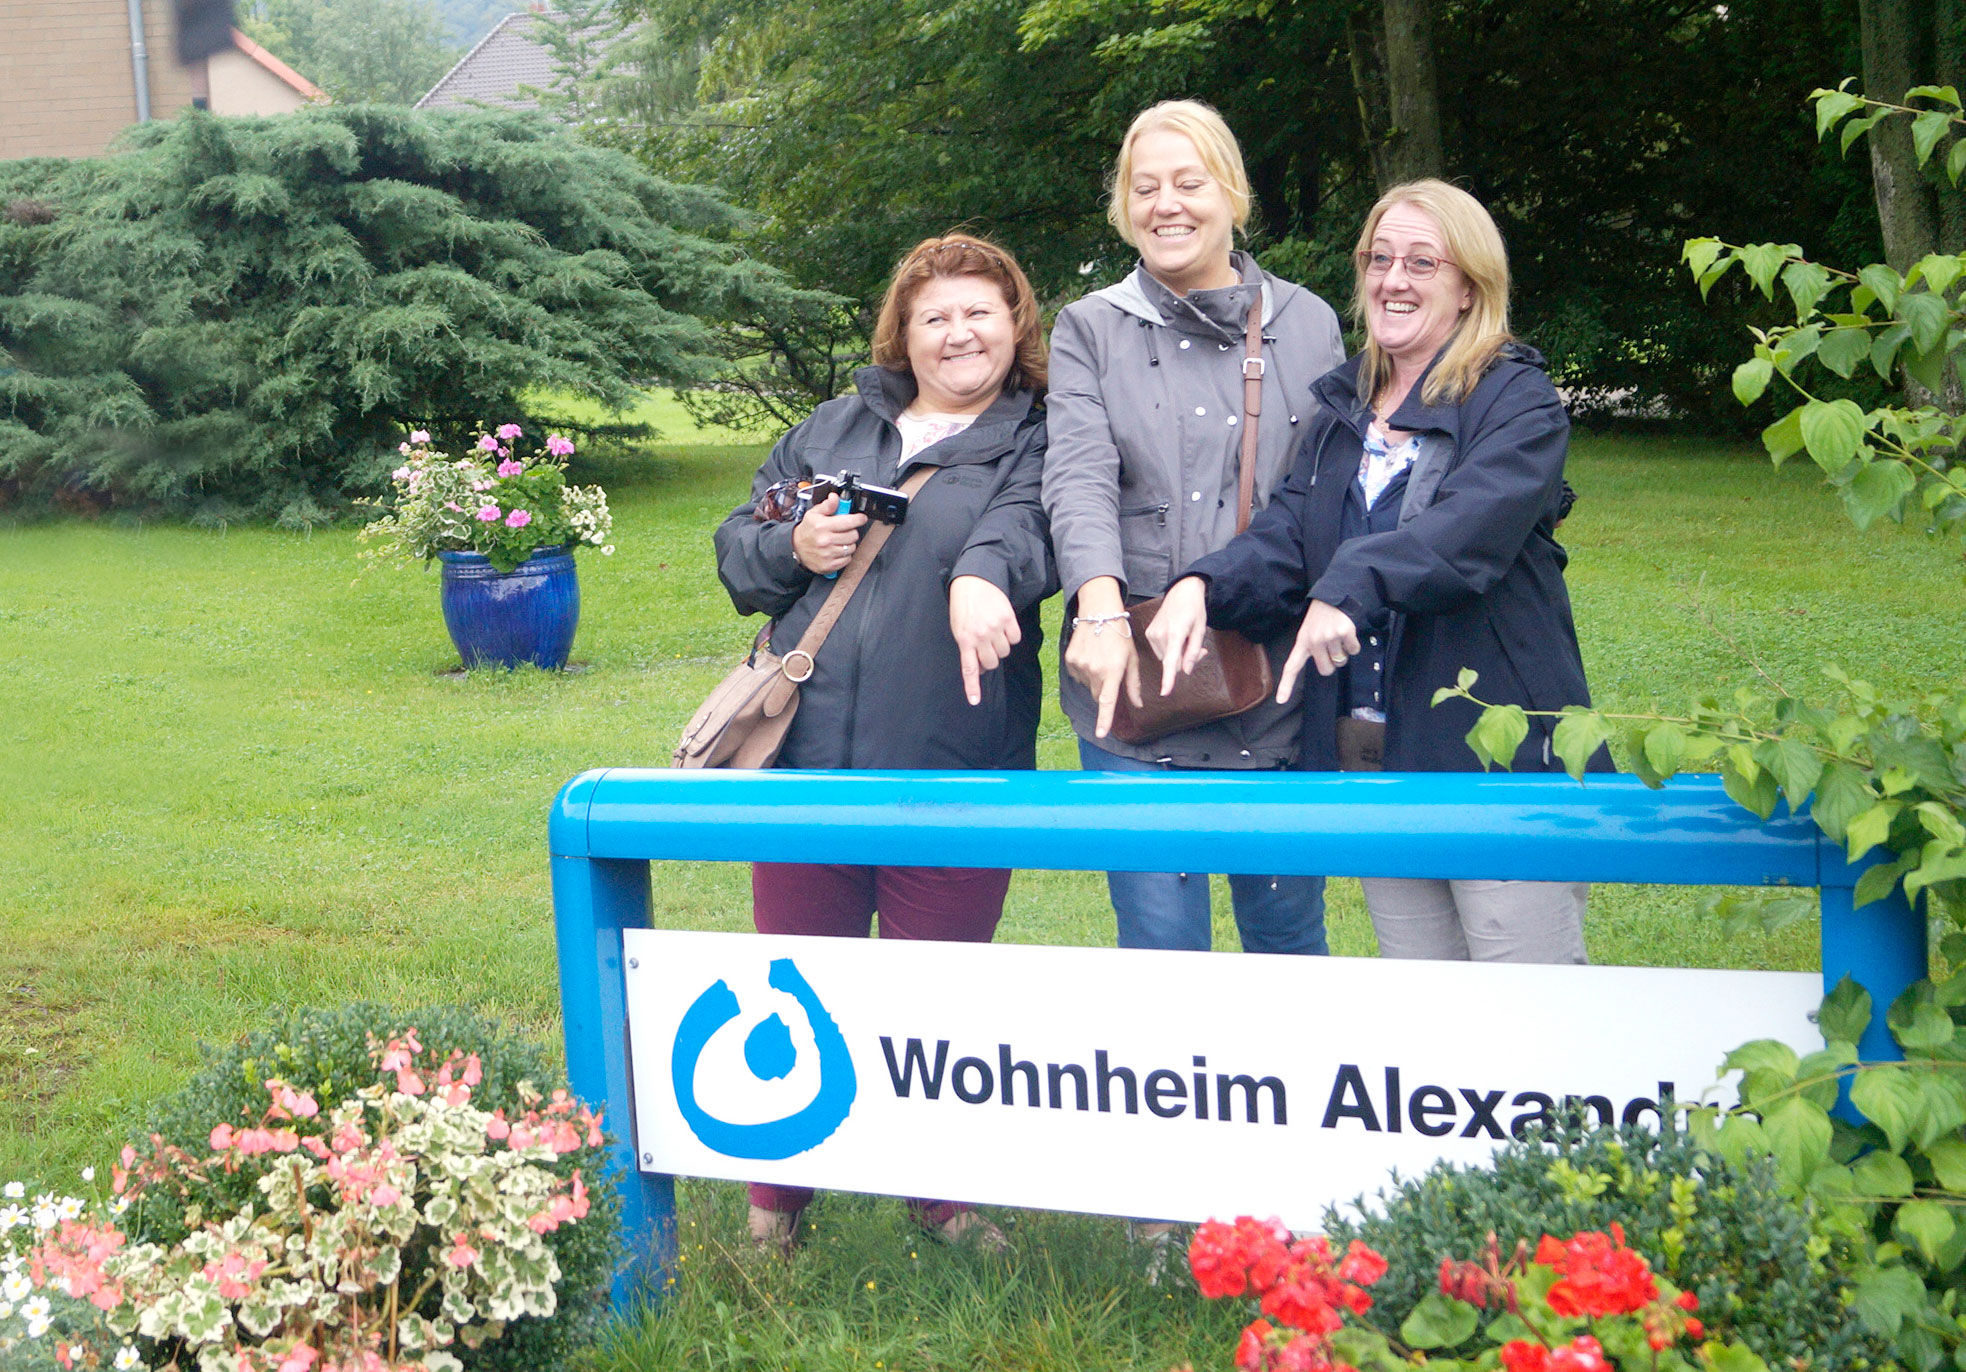 Three members of the group in the gardens of the site now occupied by the charity Lebenshilfe Rinteln eV which also has accommodation facilities